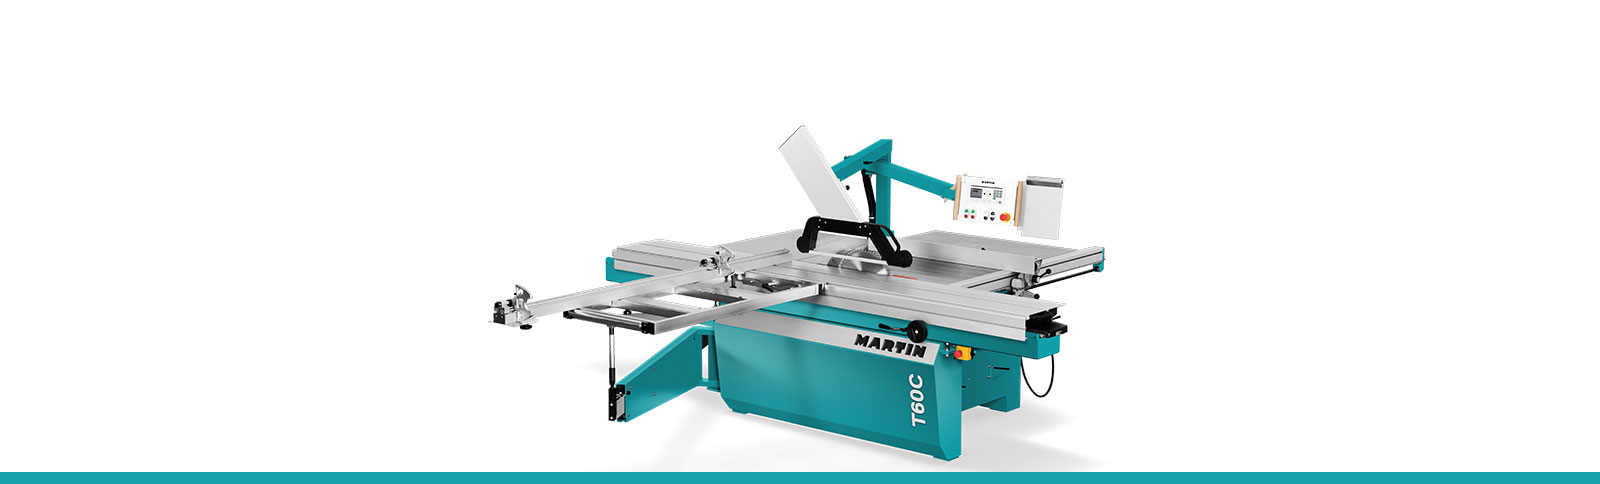 Stupendous Martin Woodworking Machines High Quality Machines For Machost Co Dining Chair Design Ideas Machostcouk